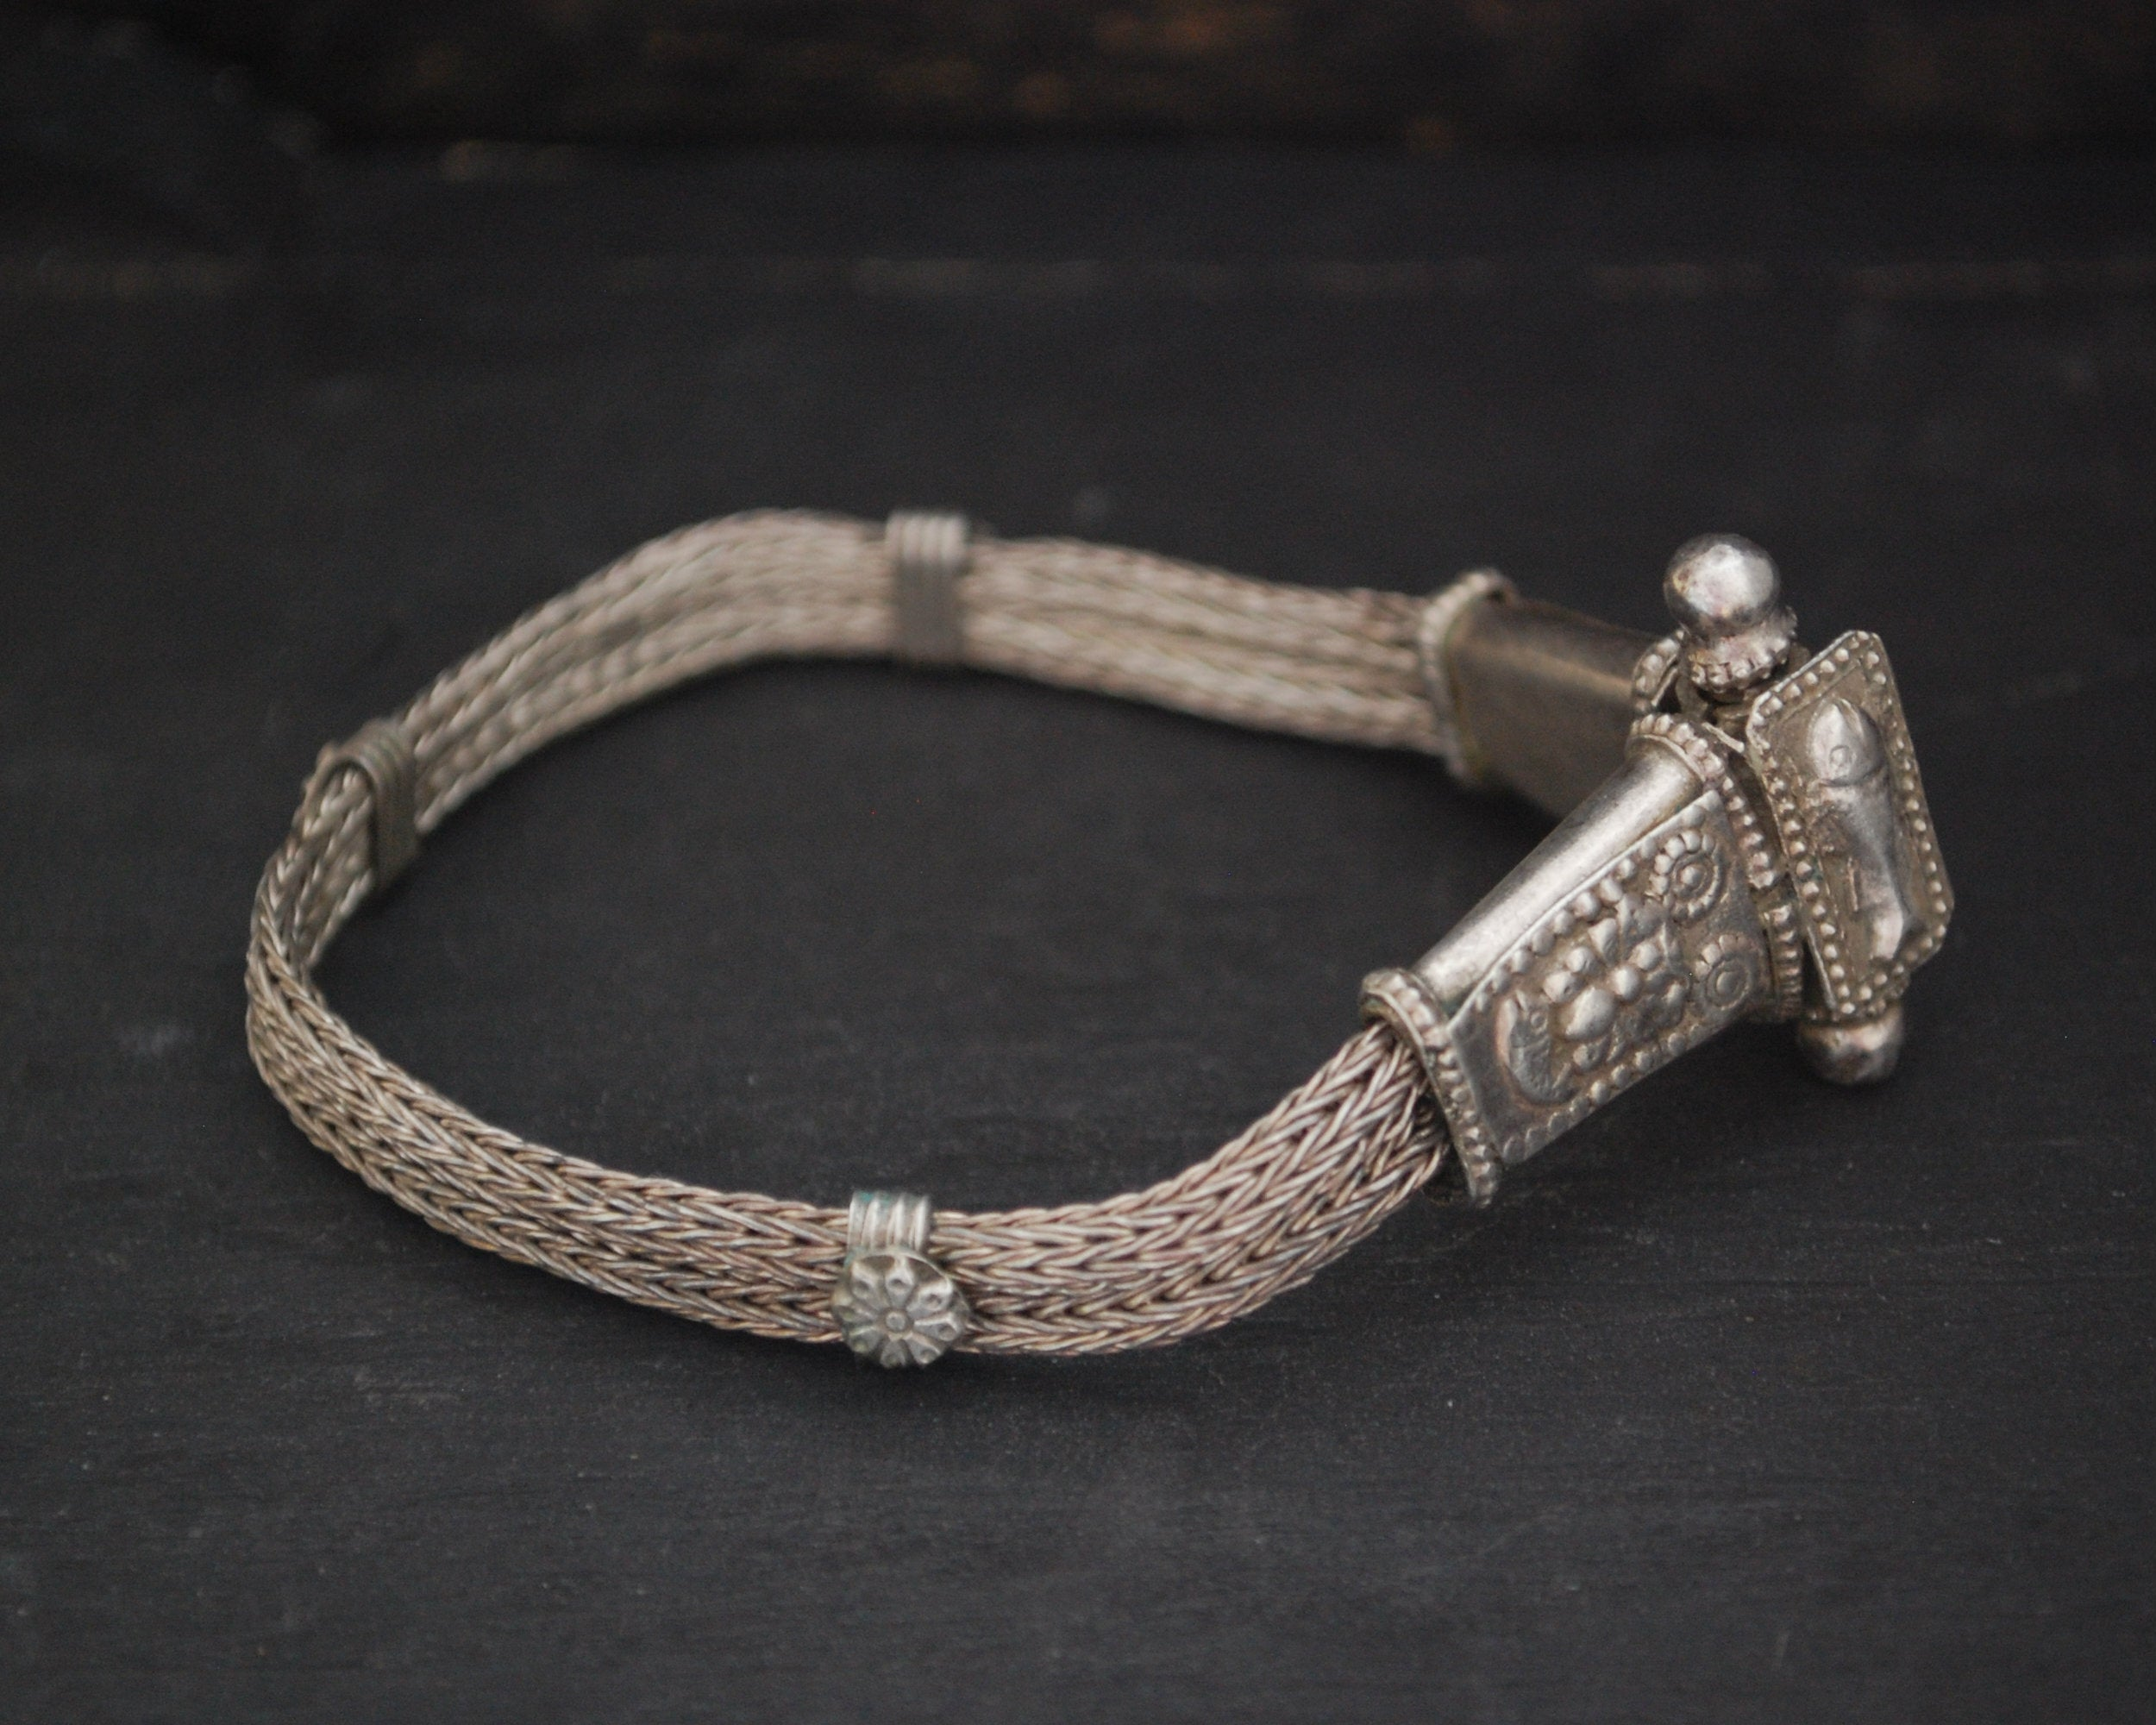 Rajasthani Snake Chain Bracelet with Fishes